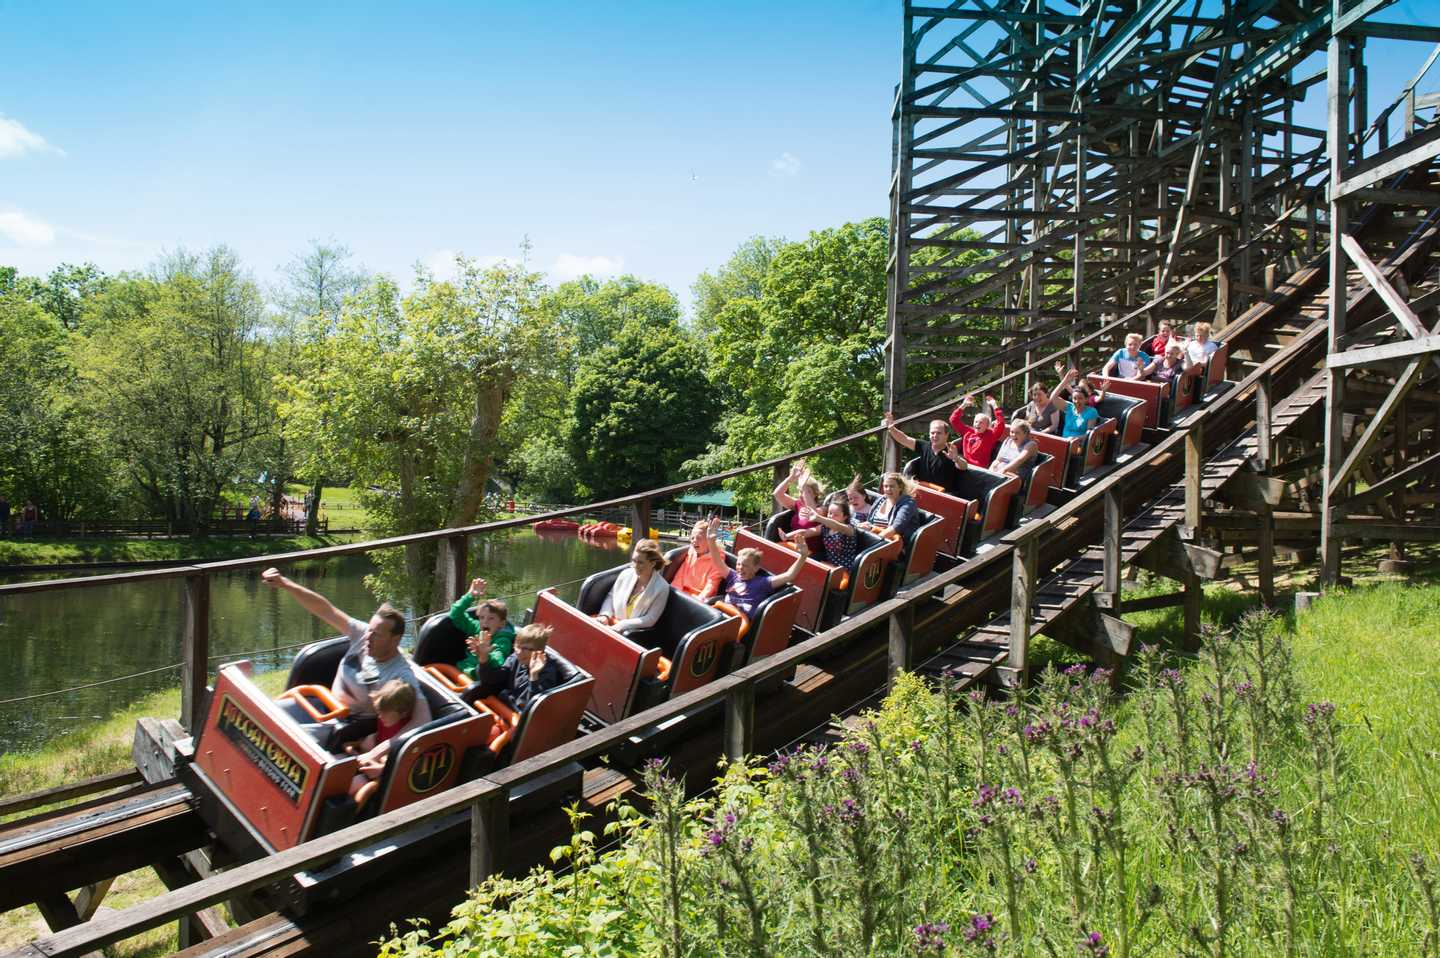 Guests on a rollercoaster at Oakwood Theme Park